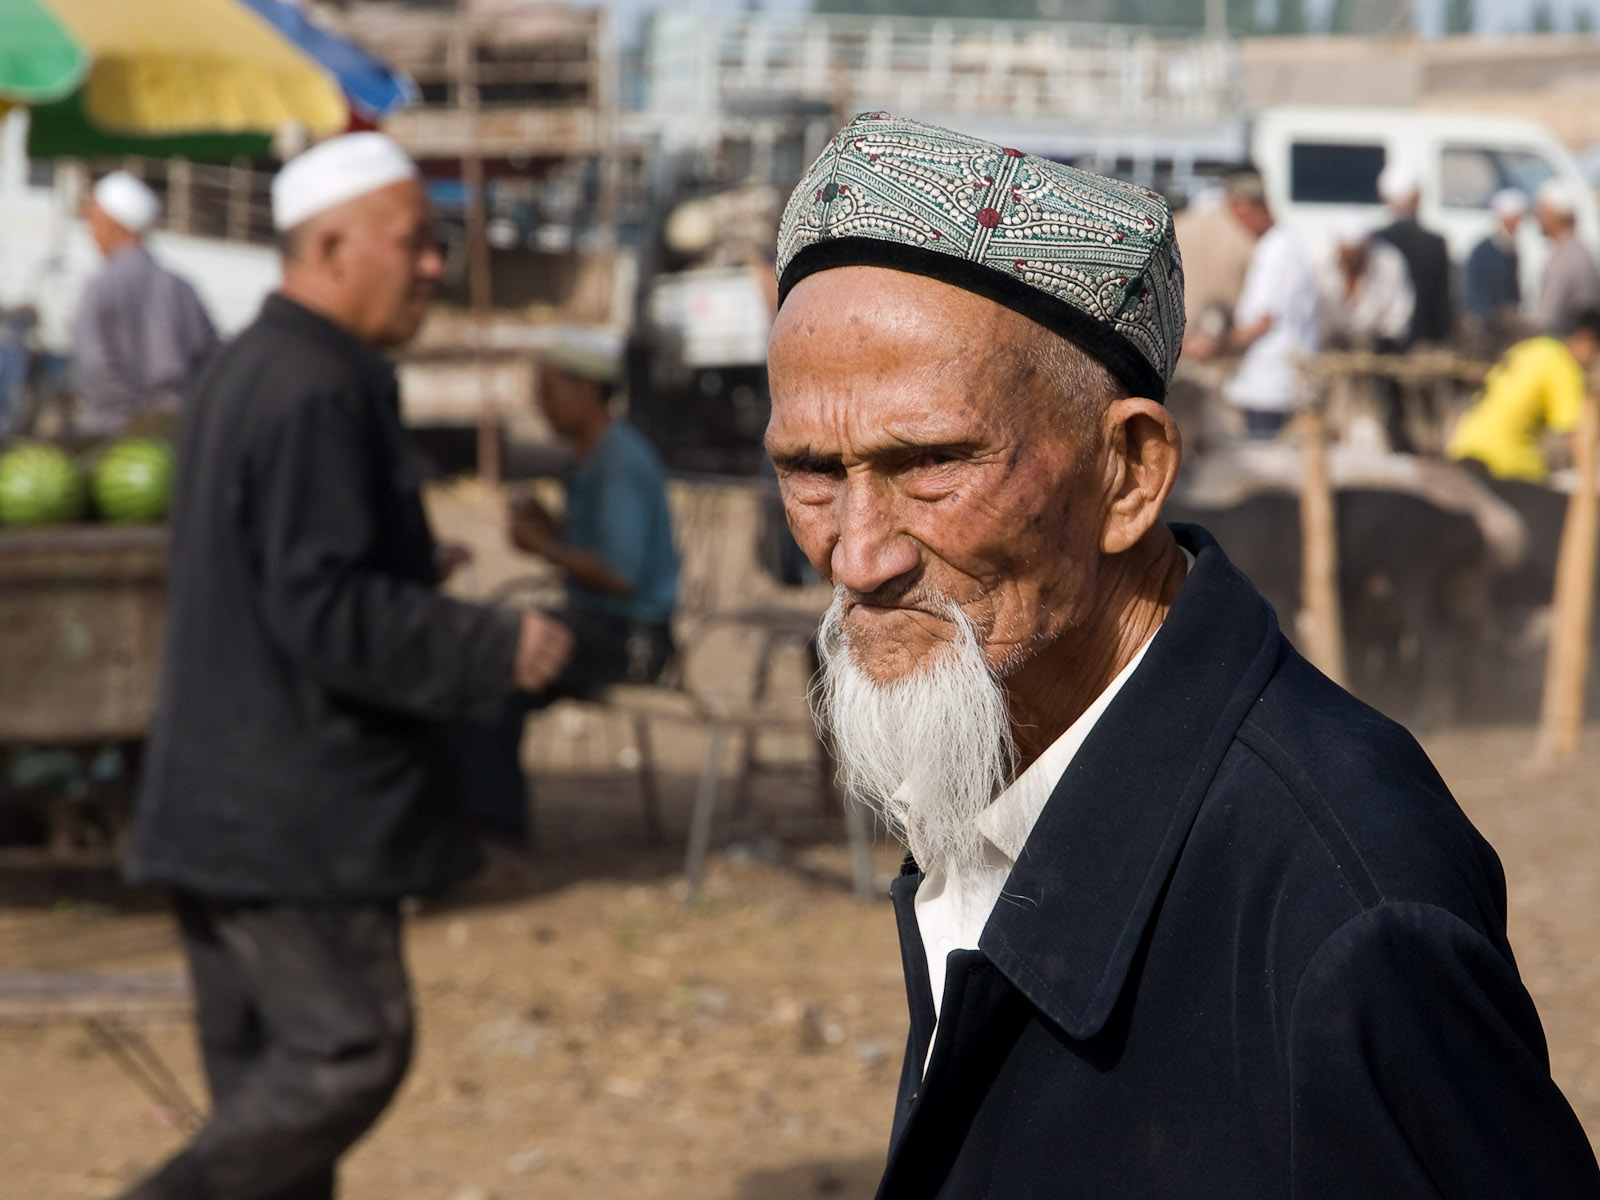 China has been cracking down on its Uyghur population. (Wikimedia Commons)